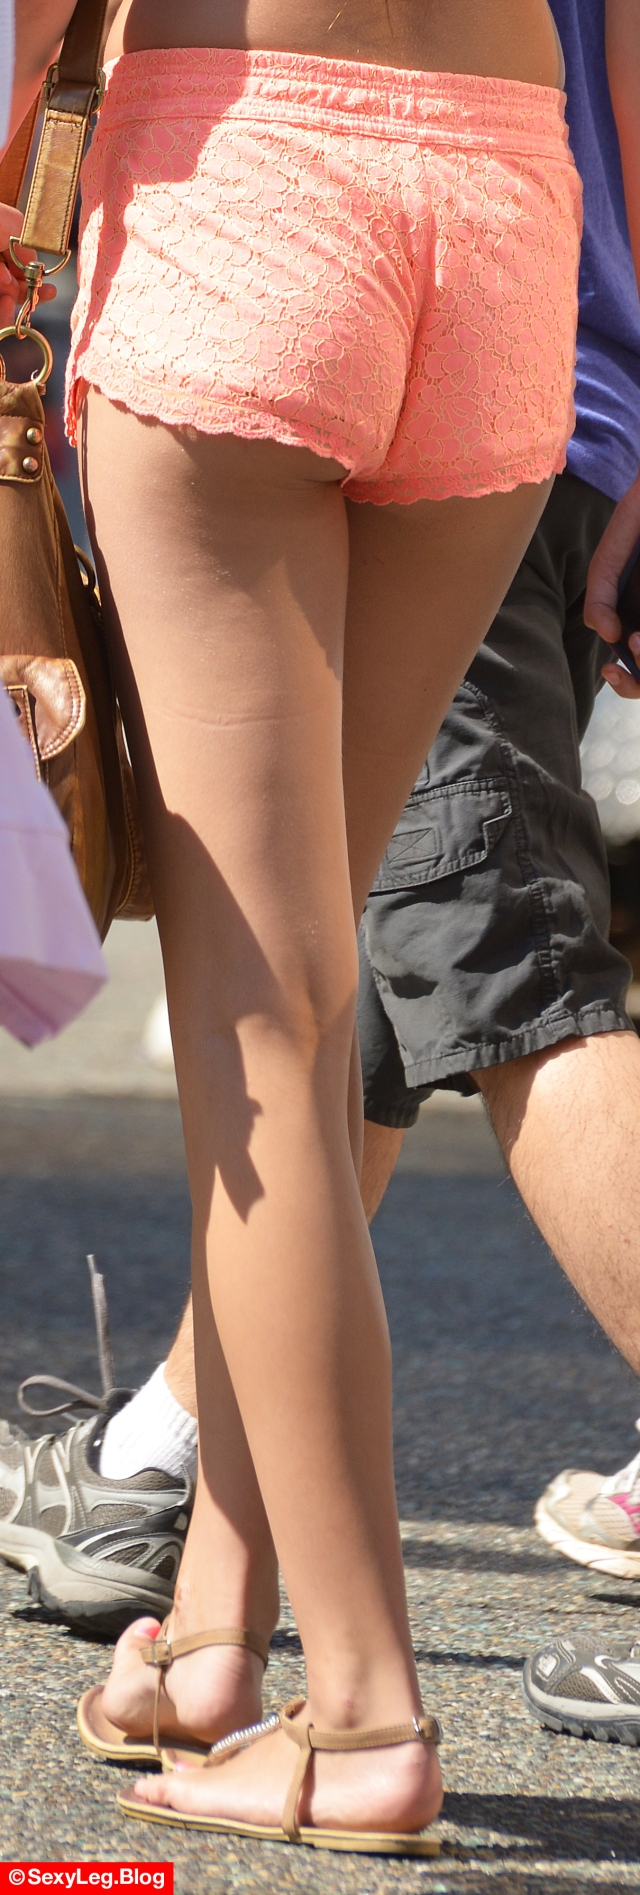 Candid Sexy Legs in Pink Shorts Showing Butt Cheeks